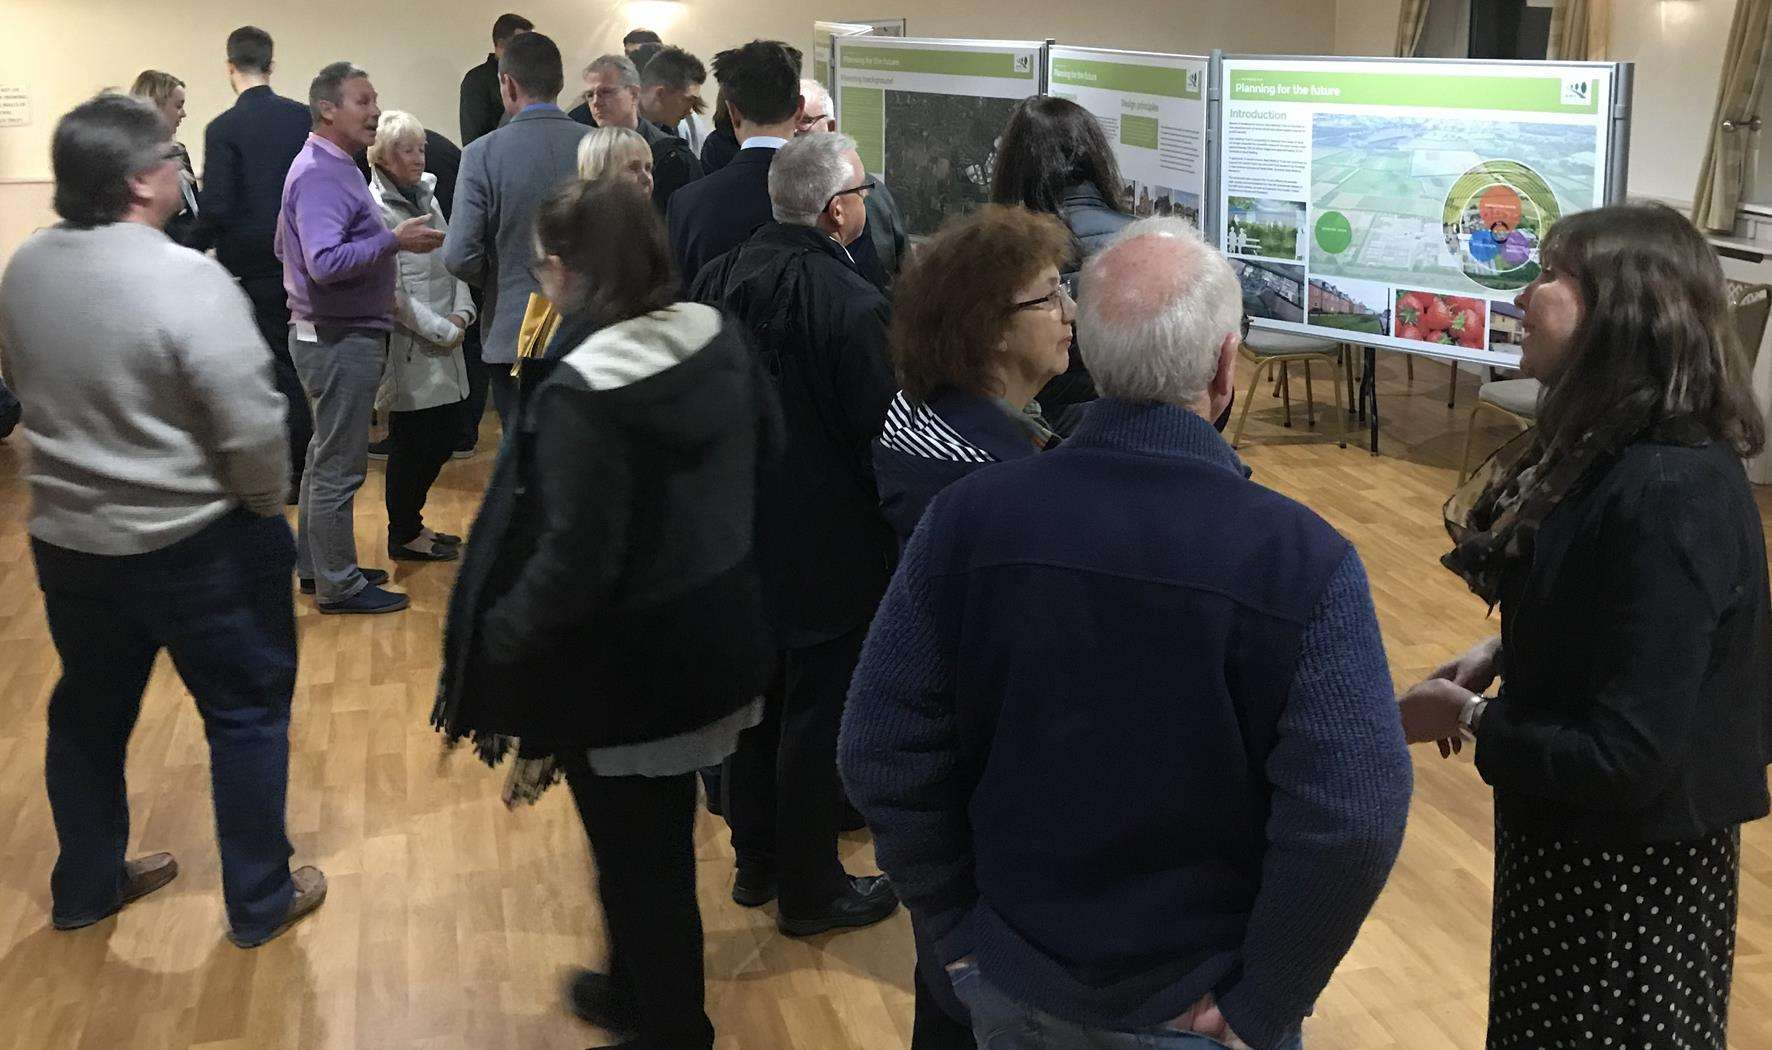 Ditton villagers at last week's public exhibition into housing plans for the East Malling Research site